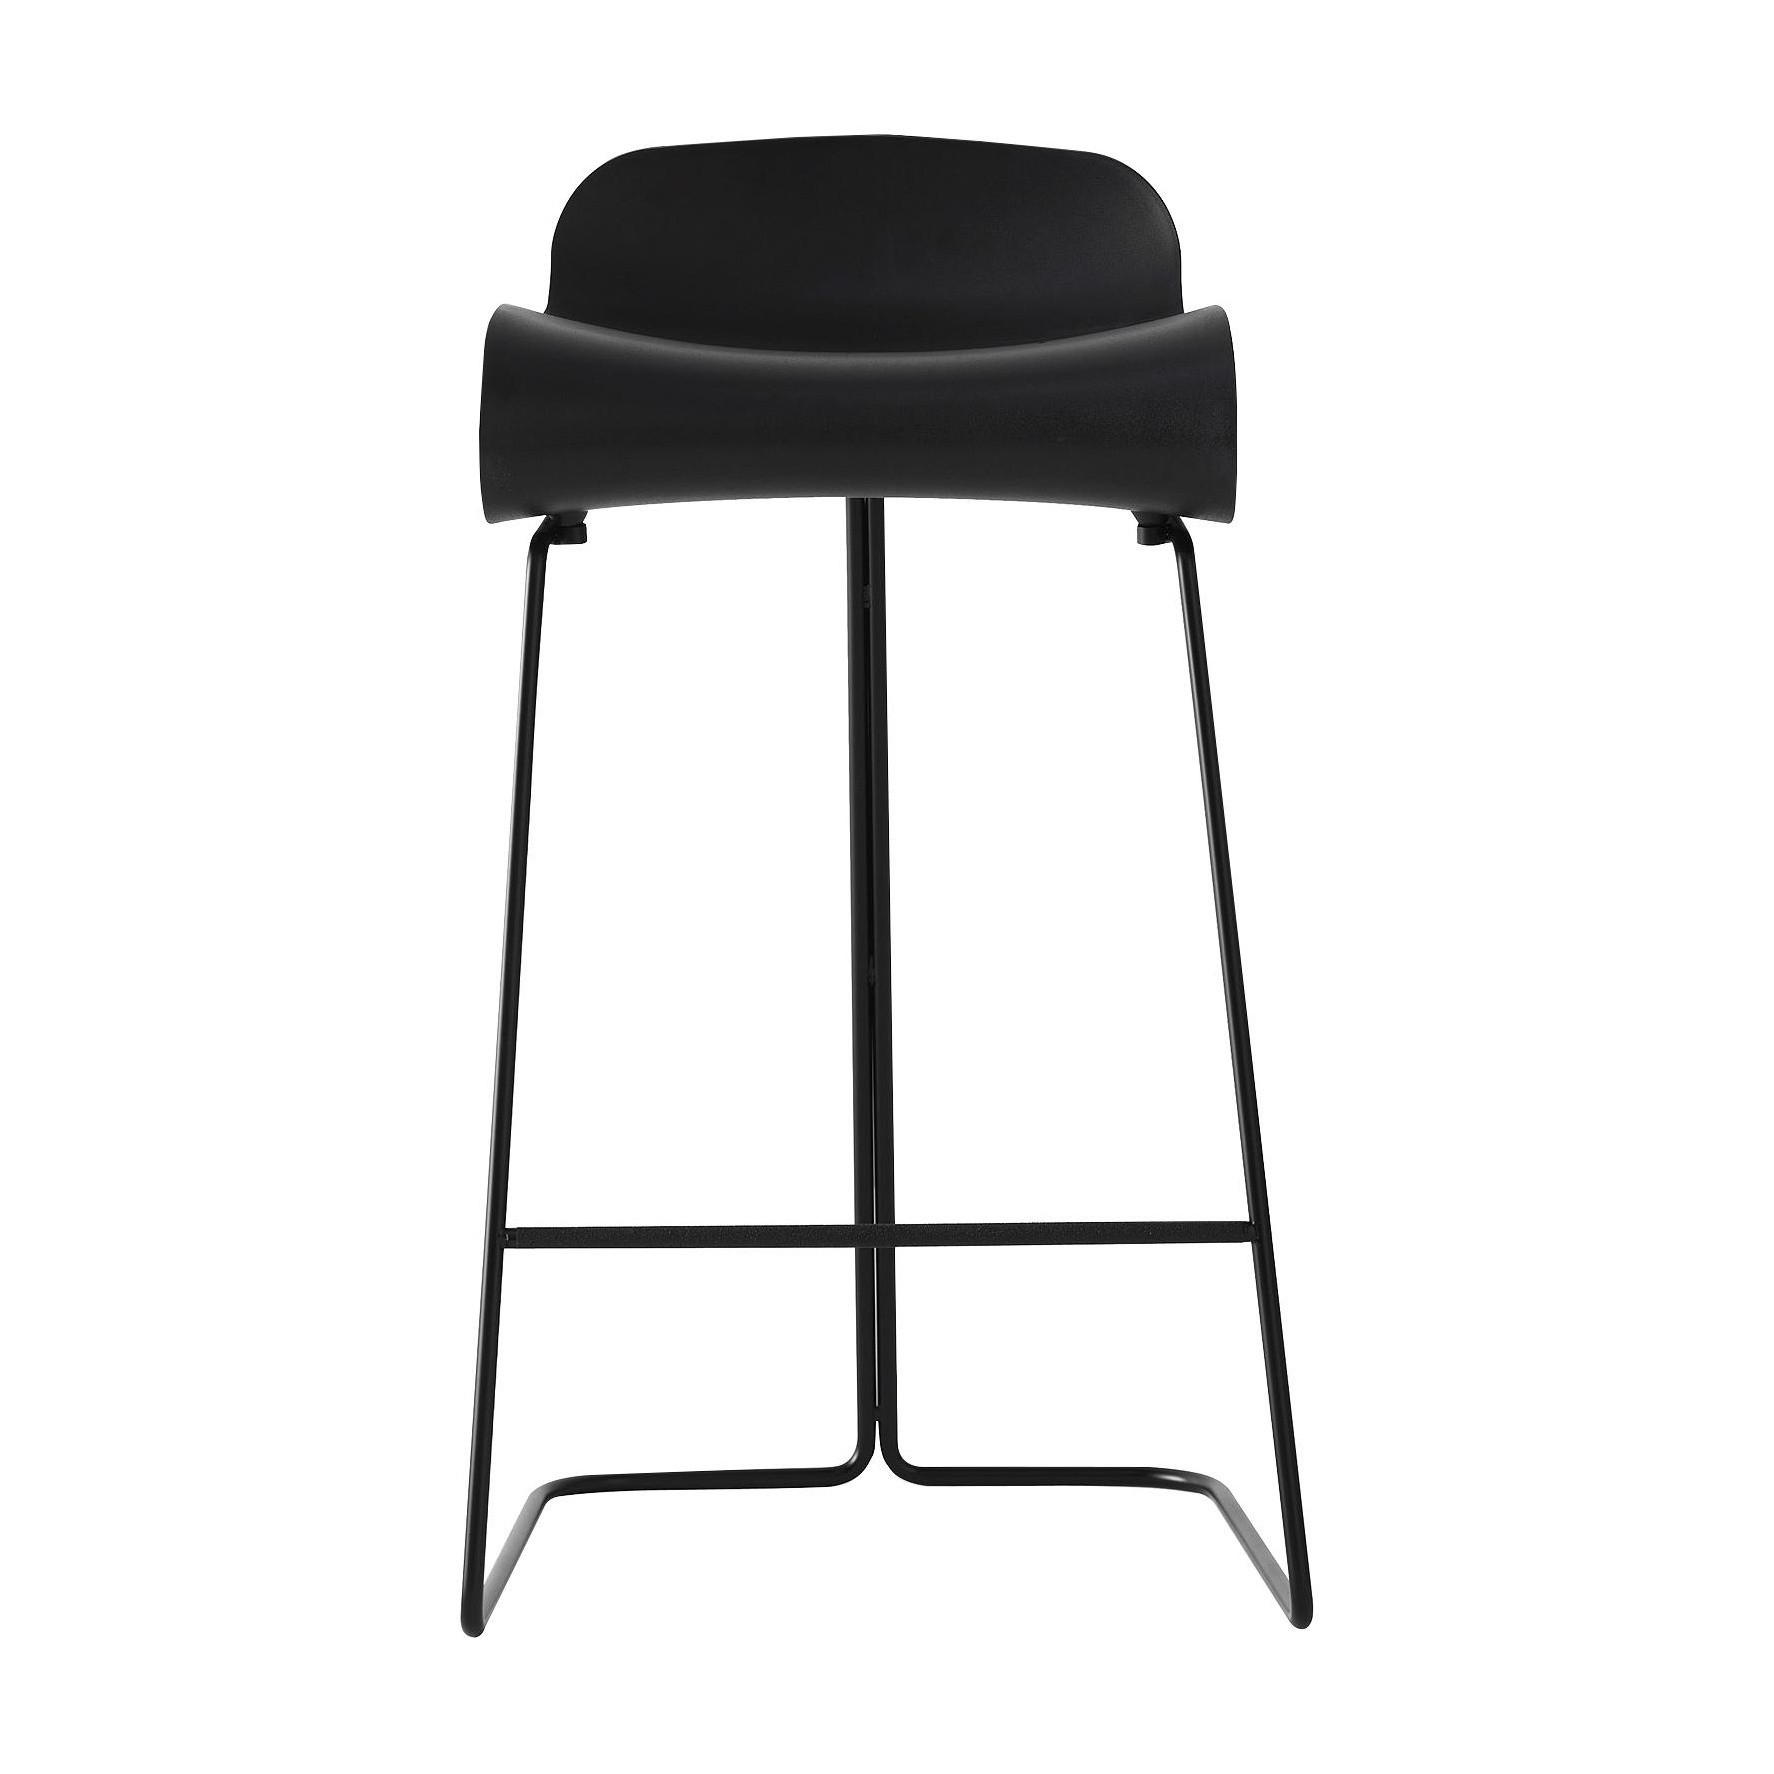 Bar Stools For Sale Bcn Stool Bar Stool